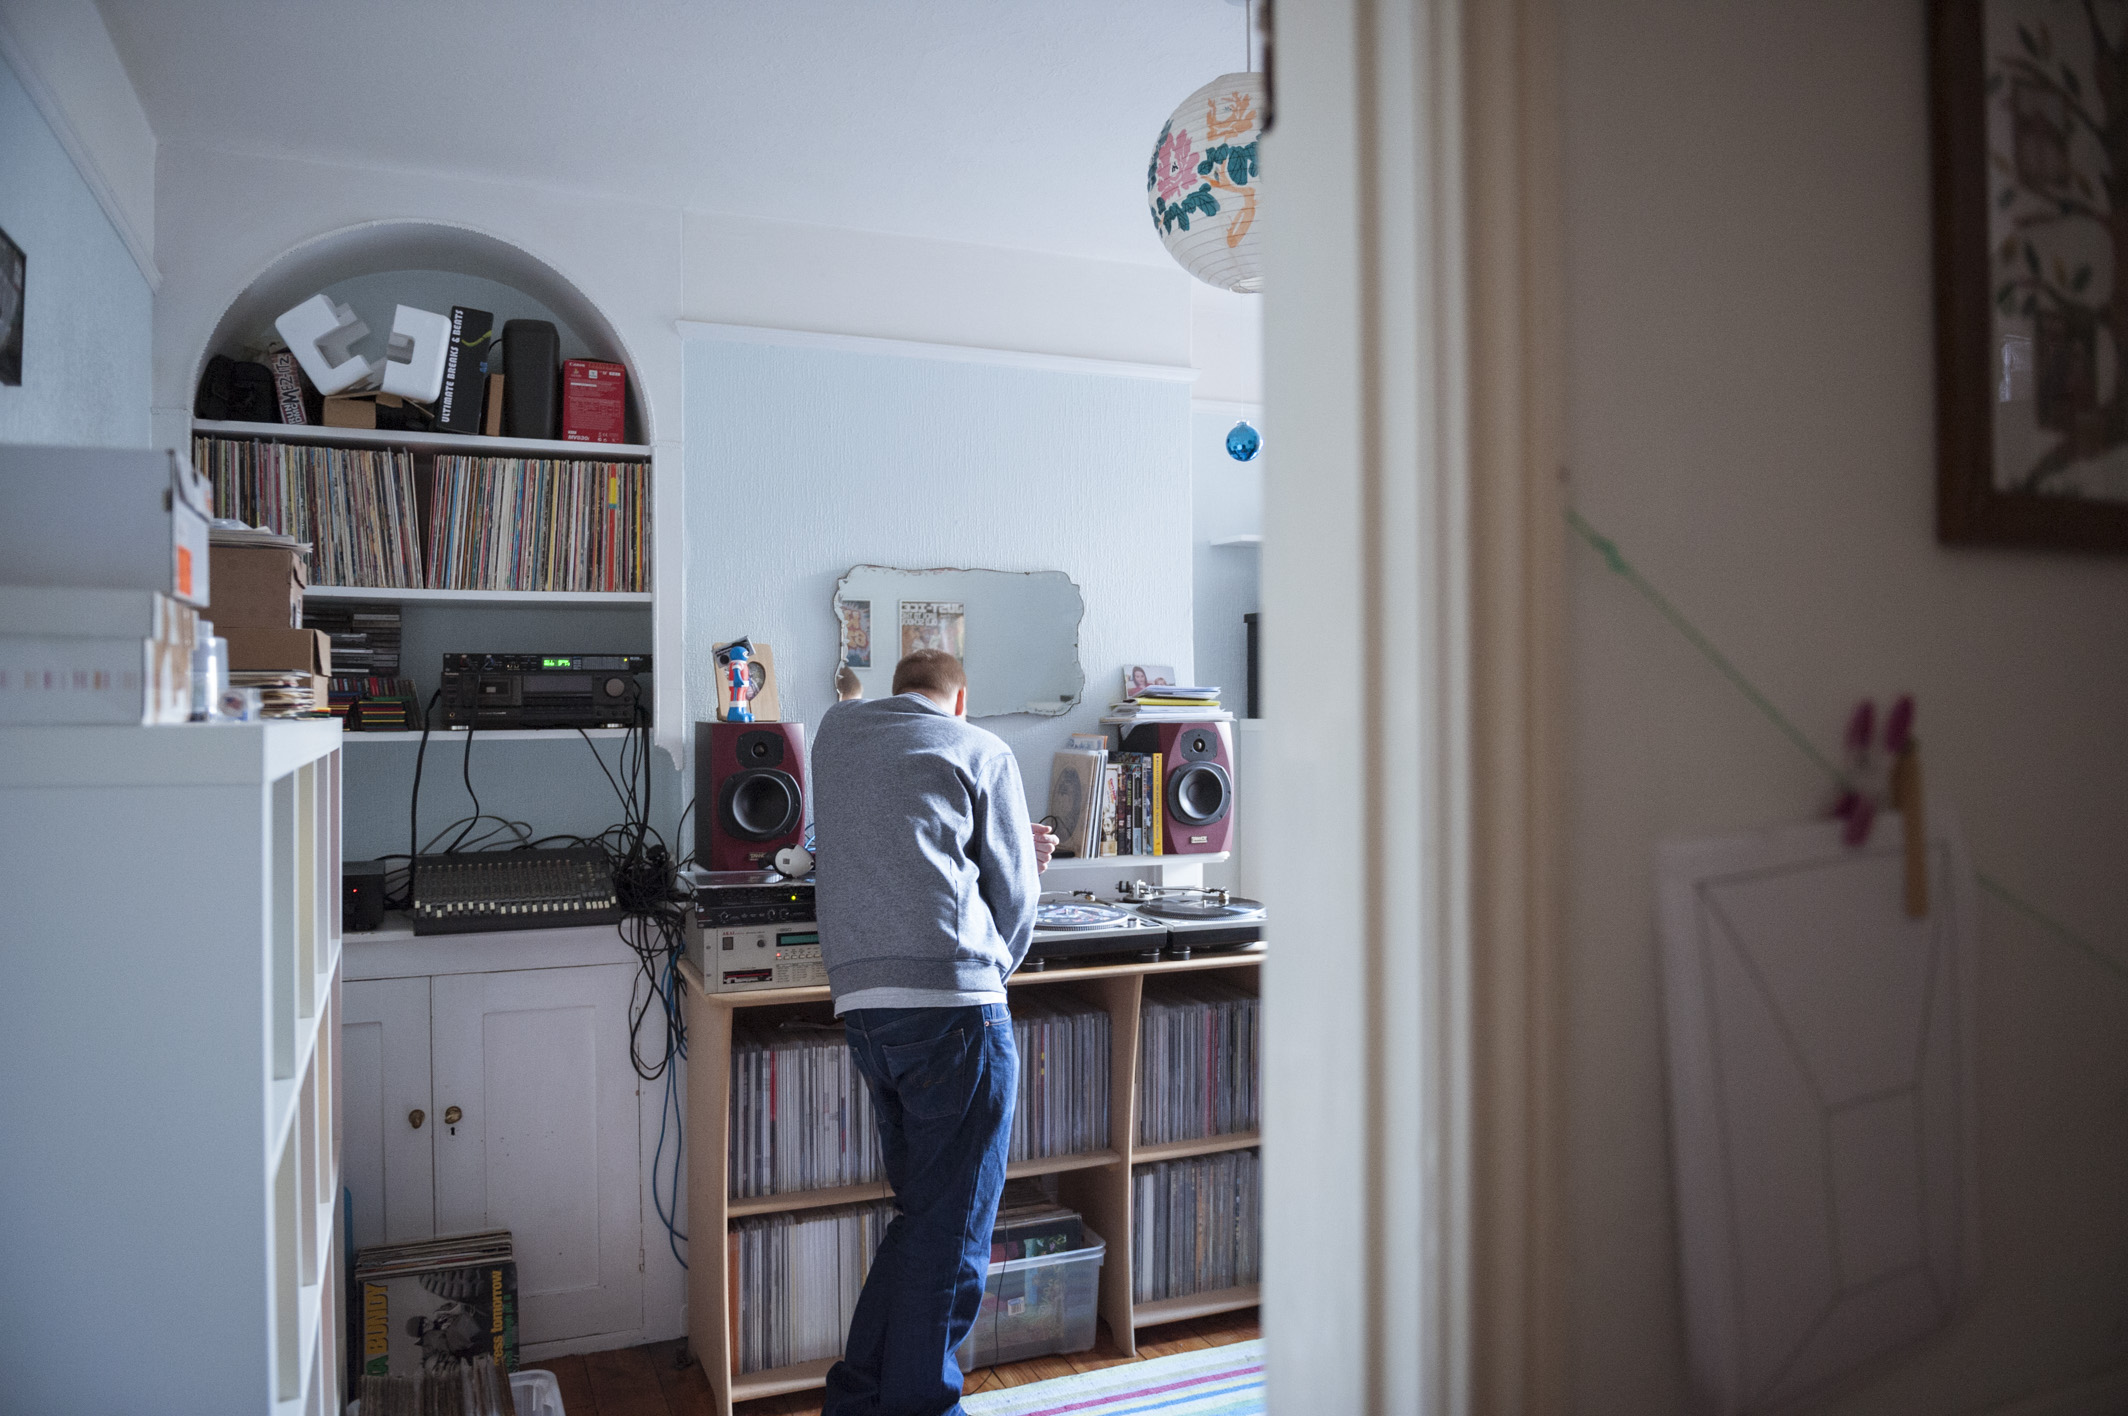 UK Hip hop music producer photographed in his home music studio for a documentary project